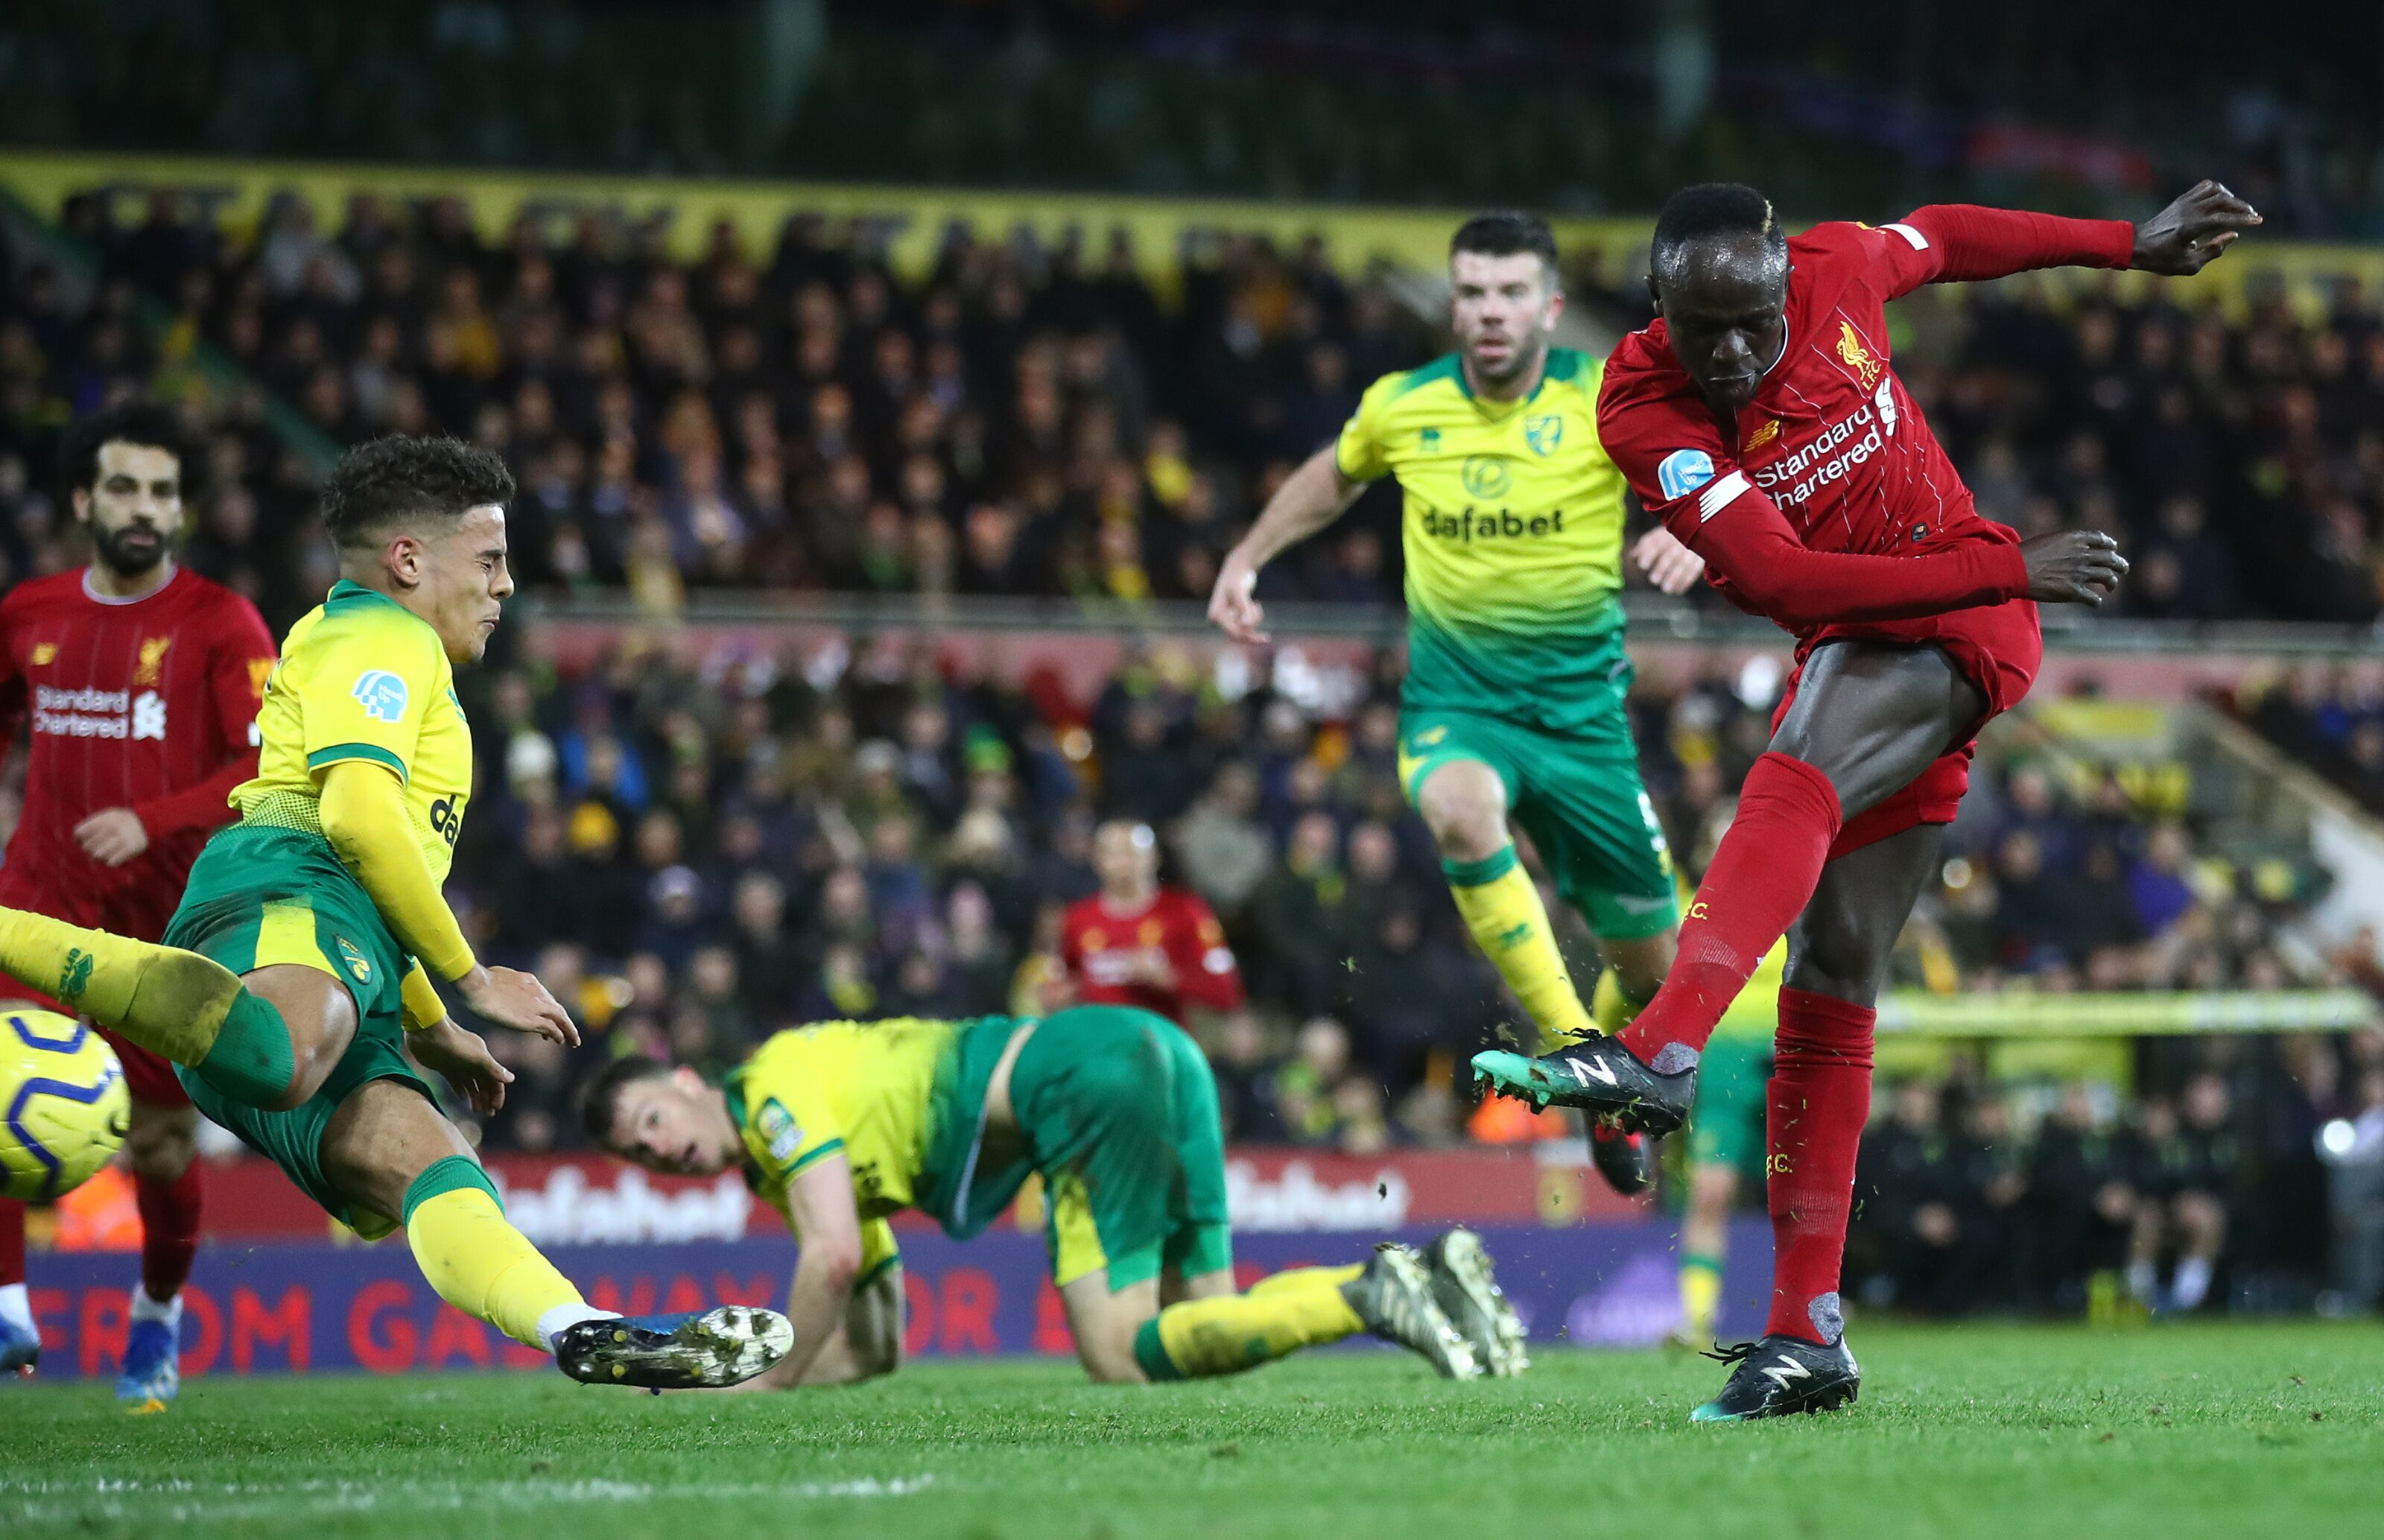 Liverpool 1-0 Norwich player ratings: Keita, Henderson boss, Mane genius